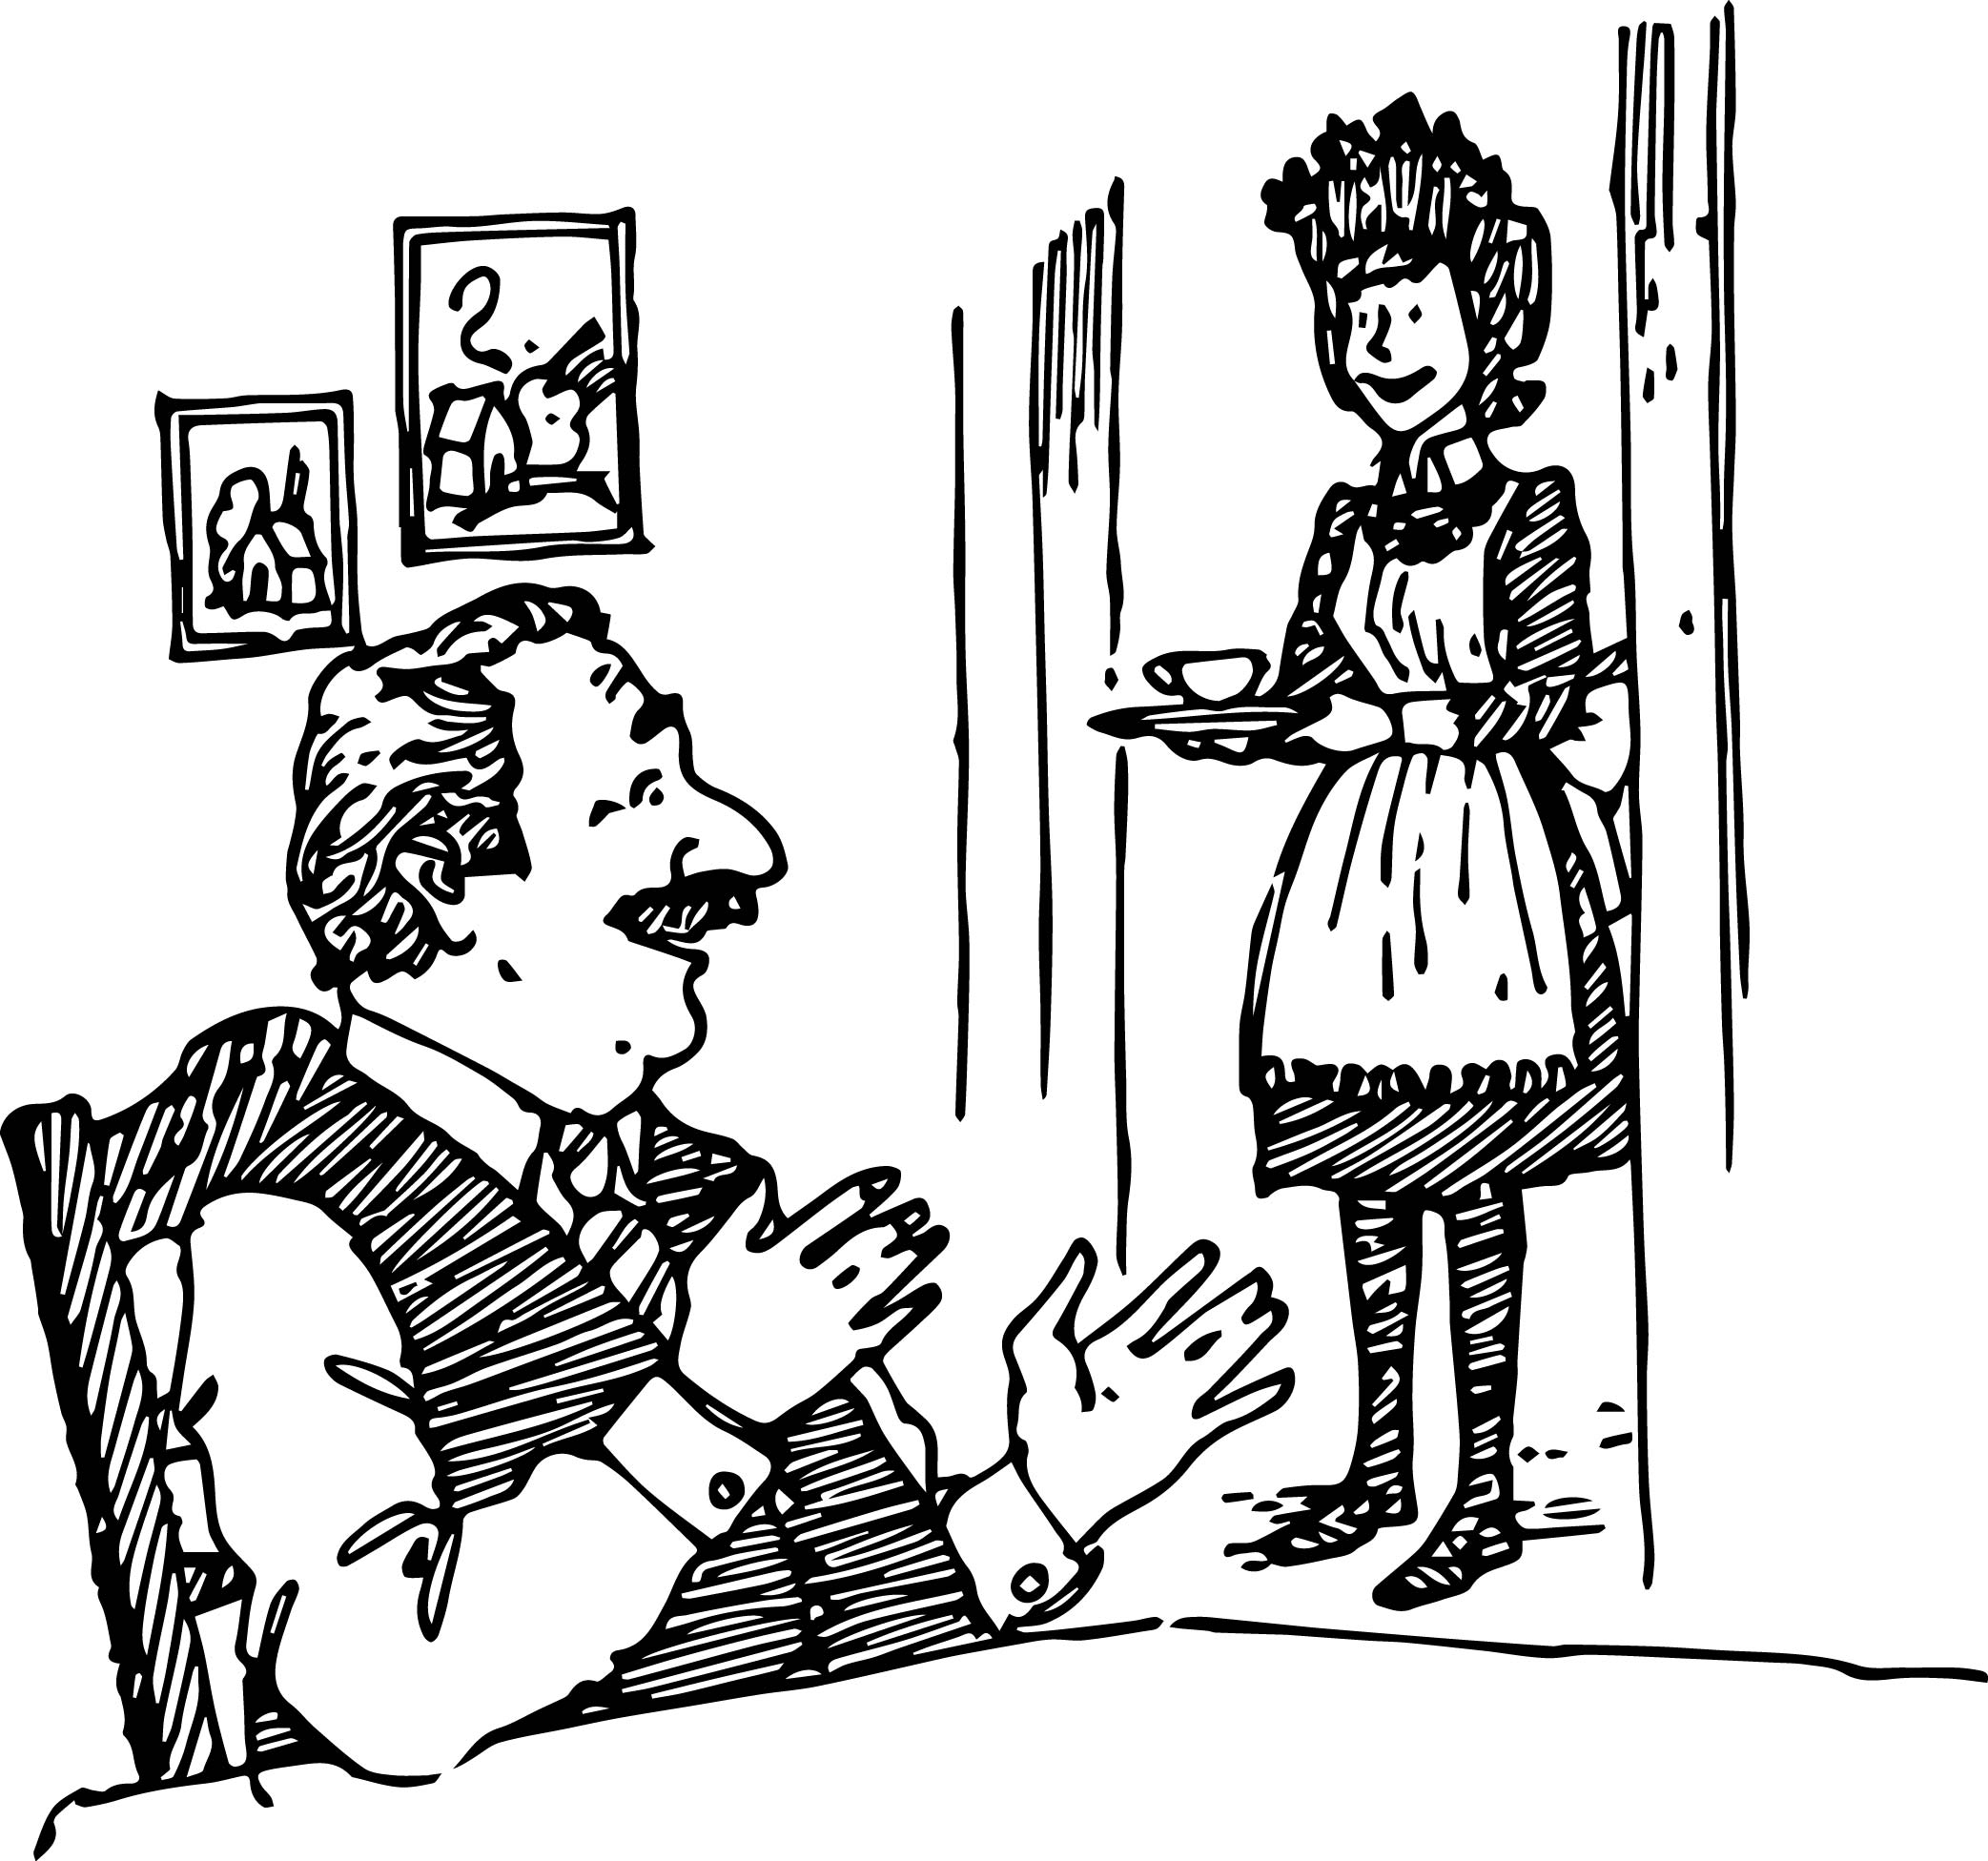 amelia bedelia coloring pages images for adults | Good Work Amelia Bedelia Coloring Page | Wecoloringpage.com